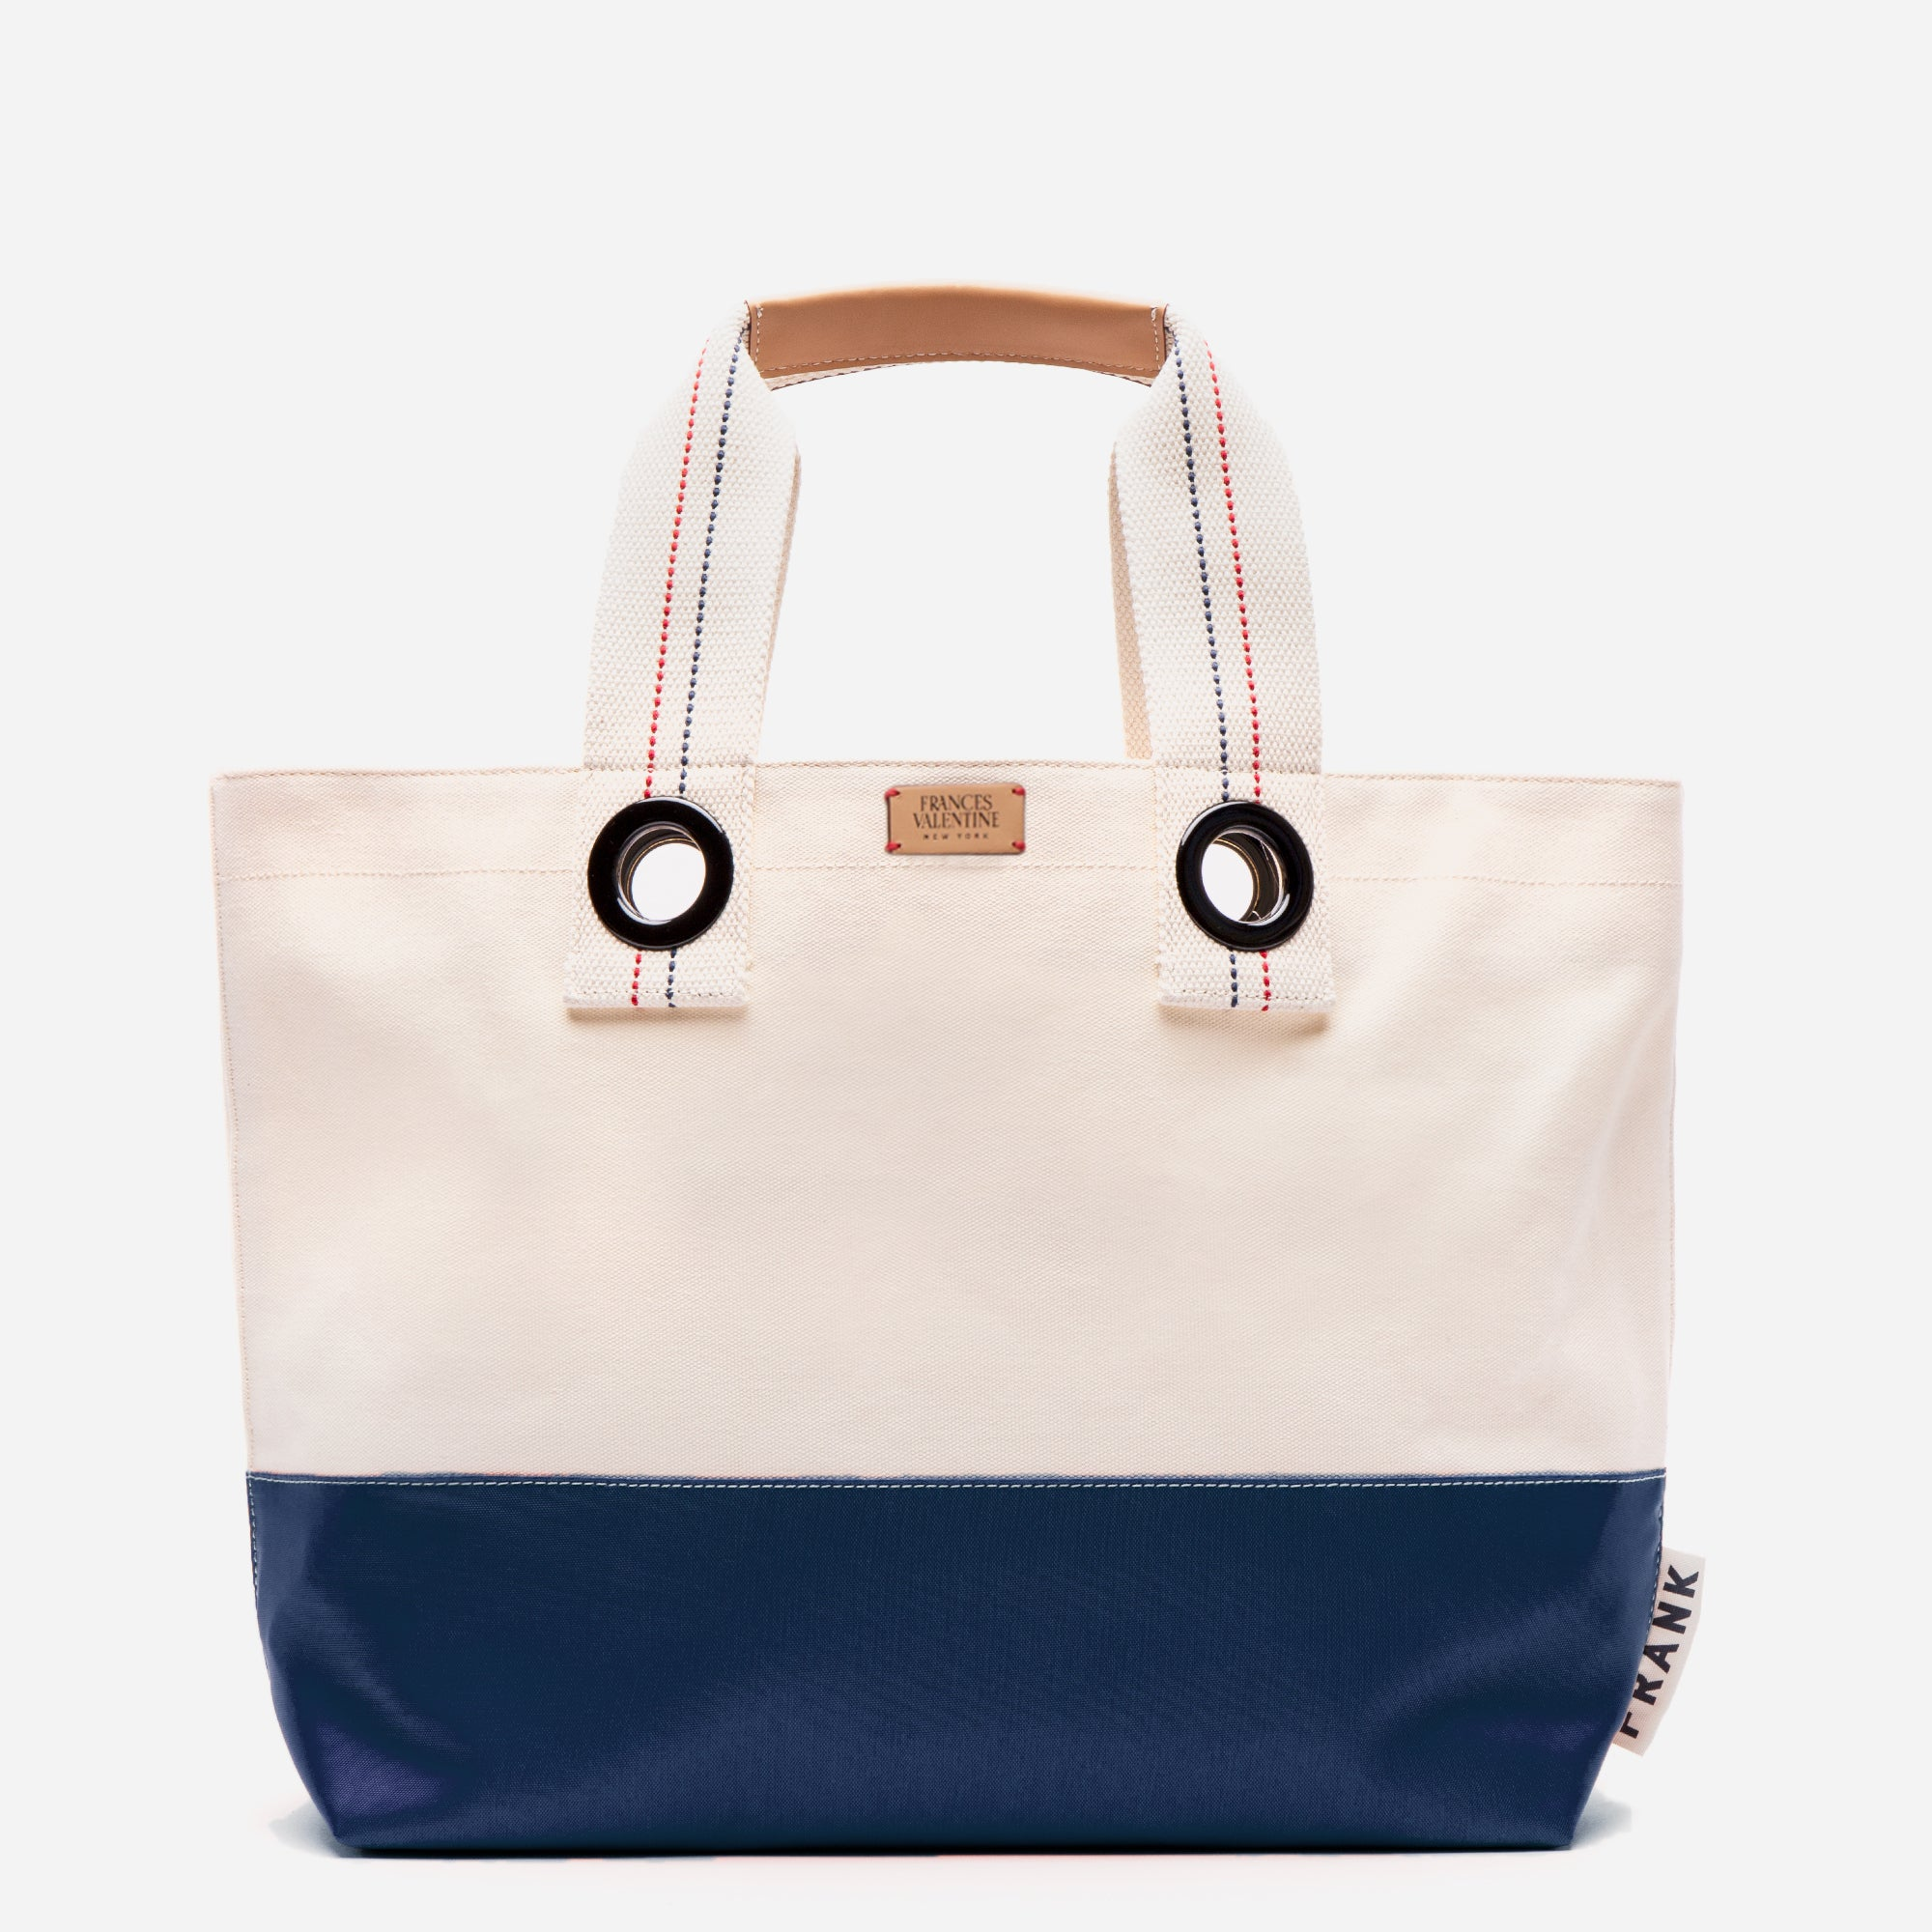 Frank Men's Canvas Weekend Tote Natural Navy - Frances Valentine